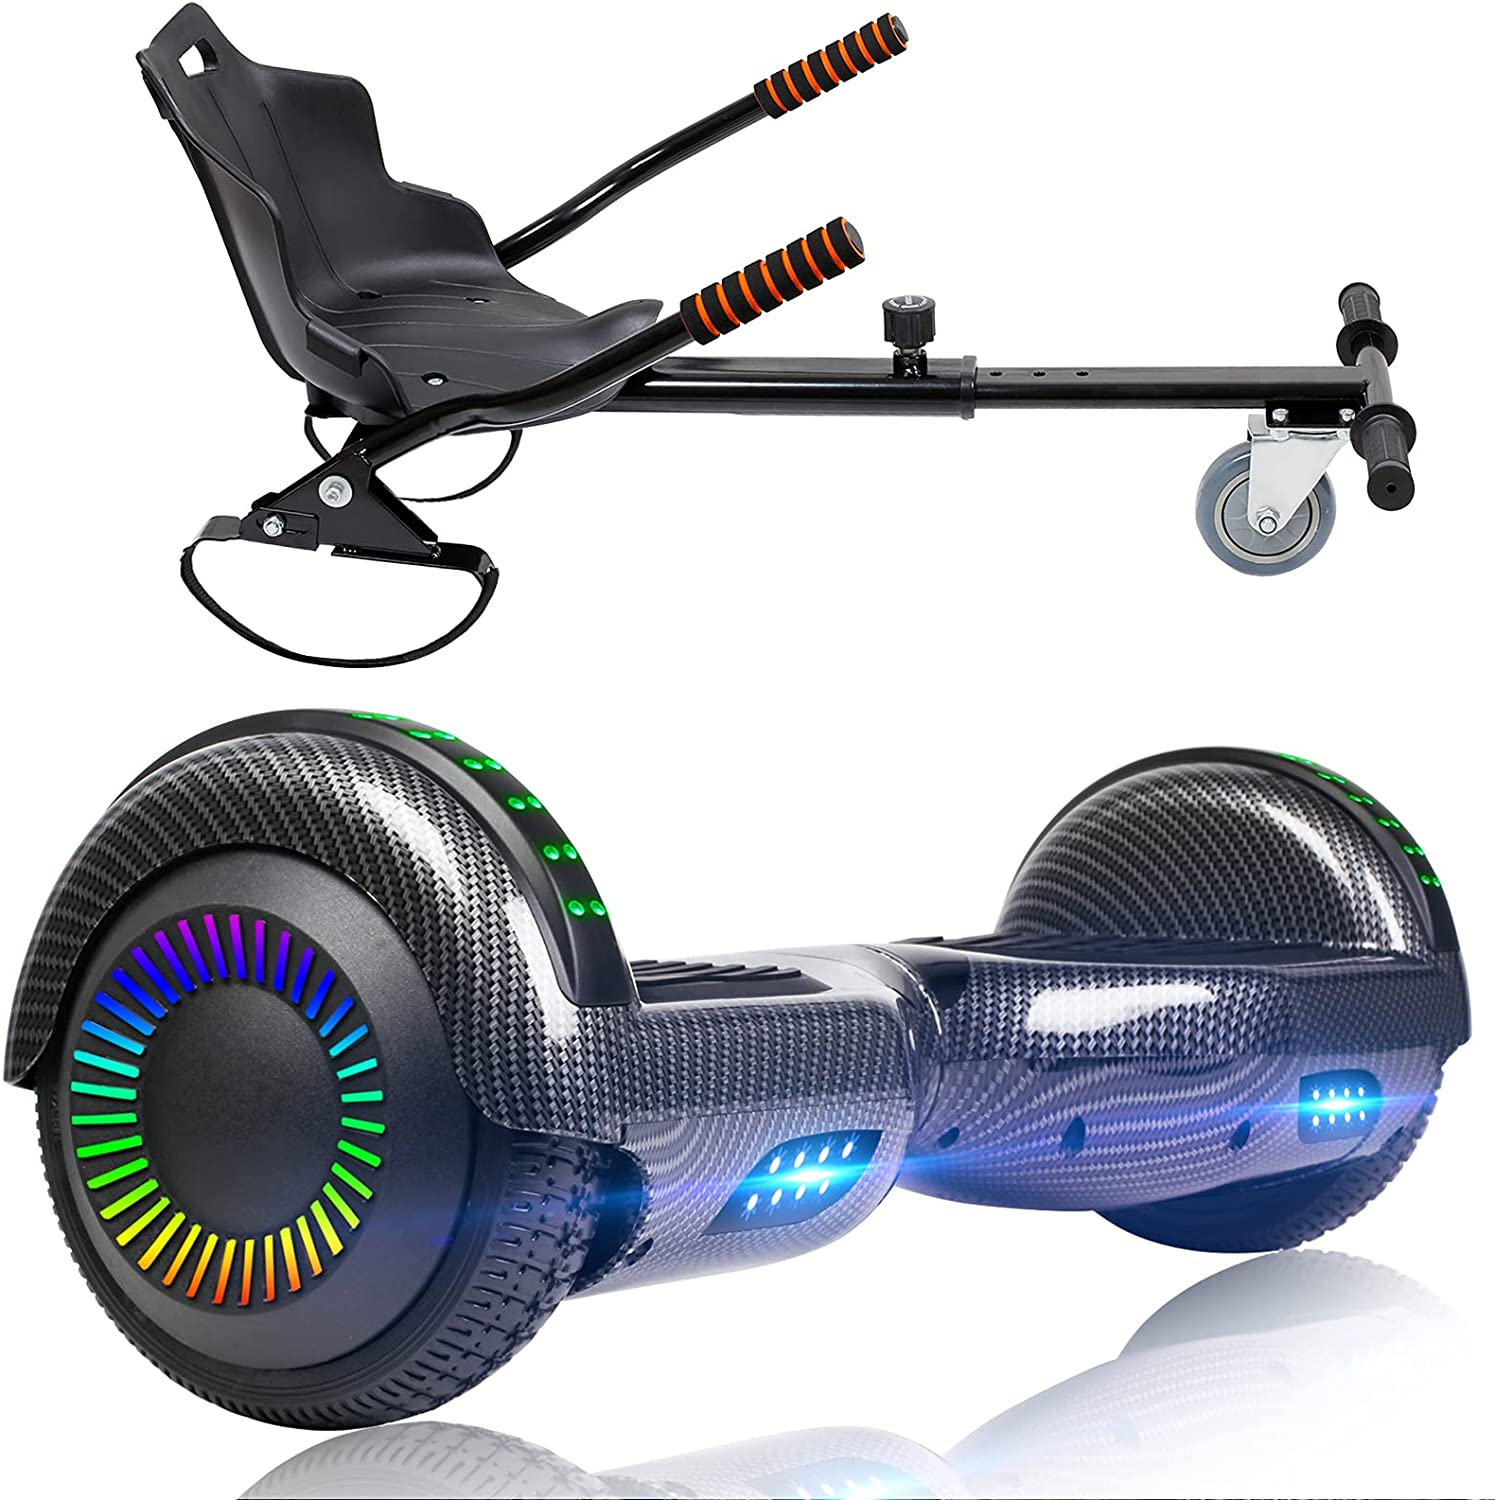 SISIGAD Hoverboard with Seat Attachment Ho 6.5